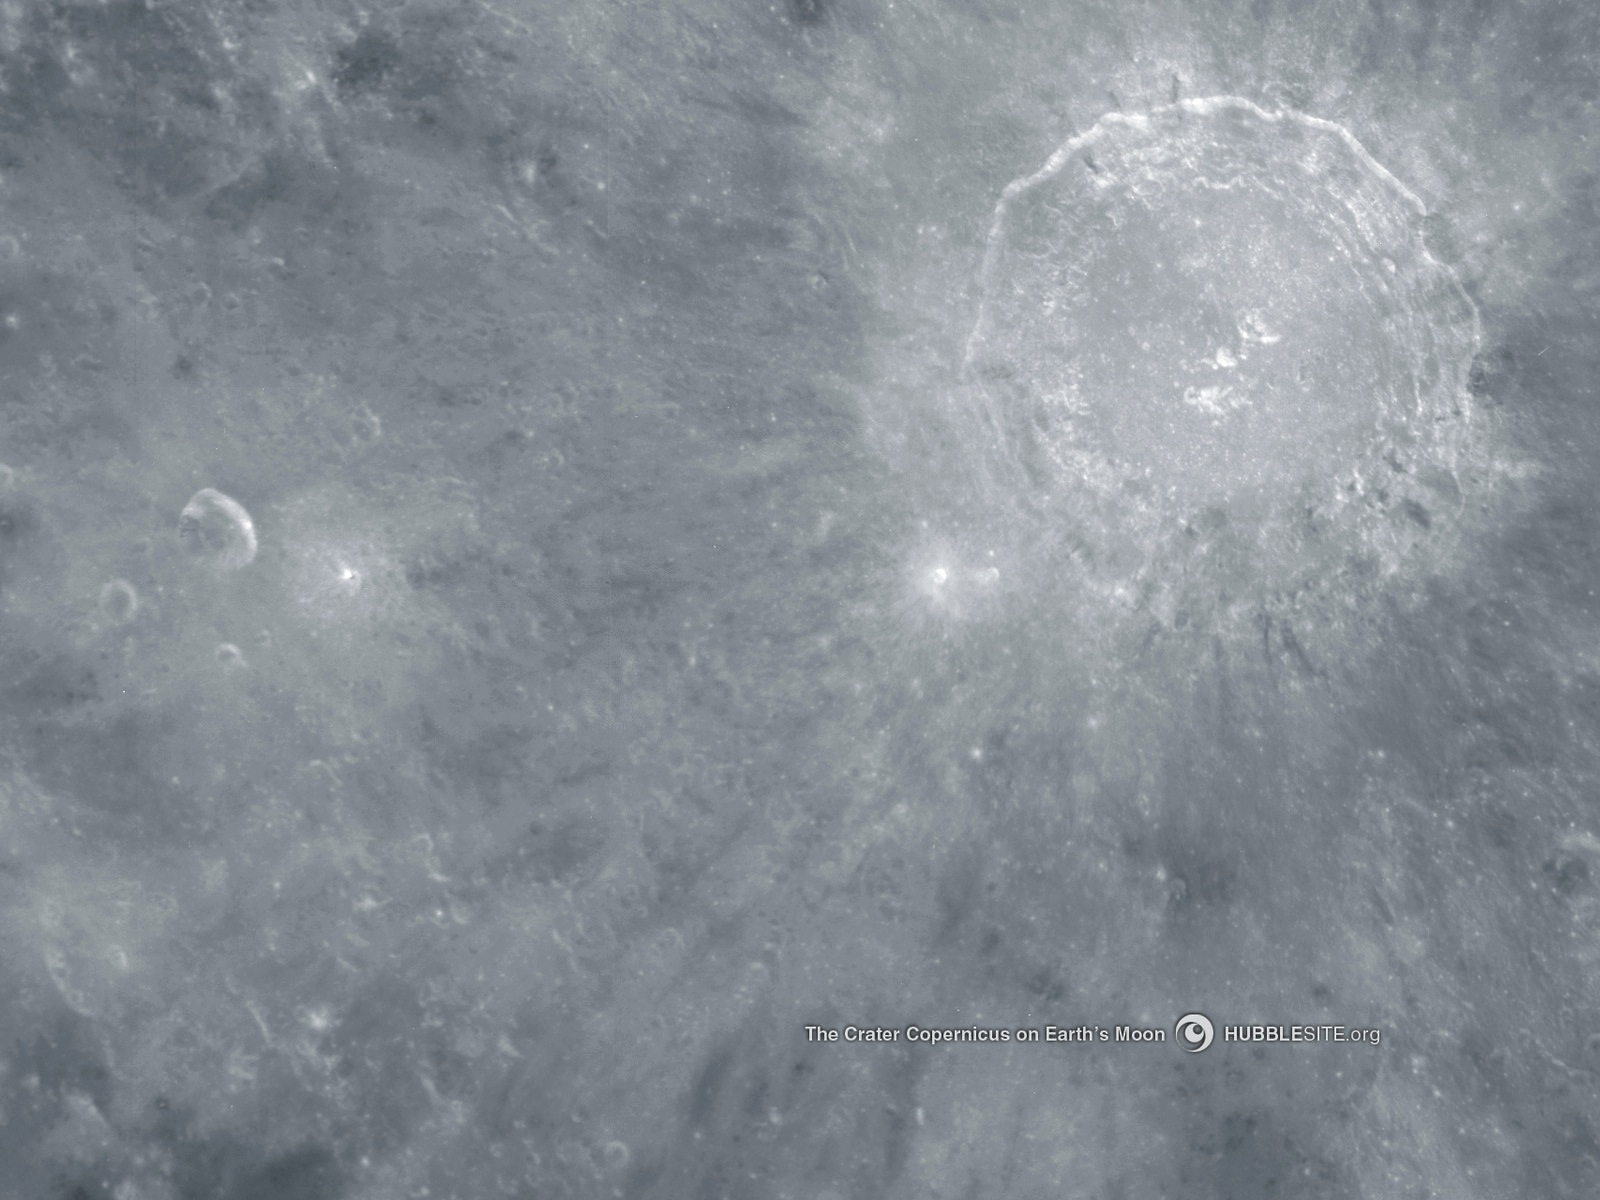 Crater Copernicus on the Moon Space wallpaper